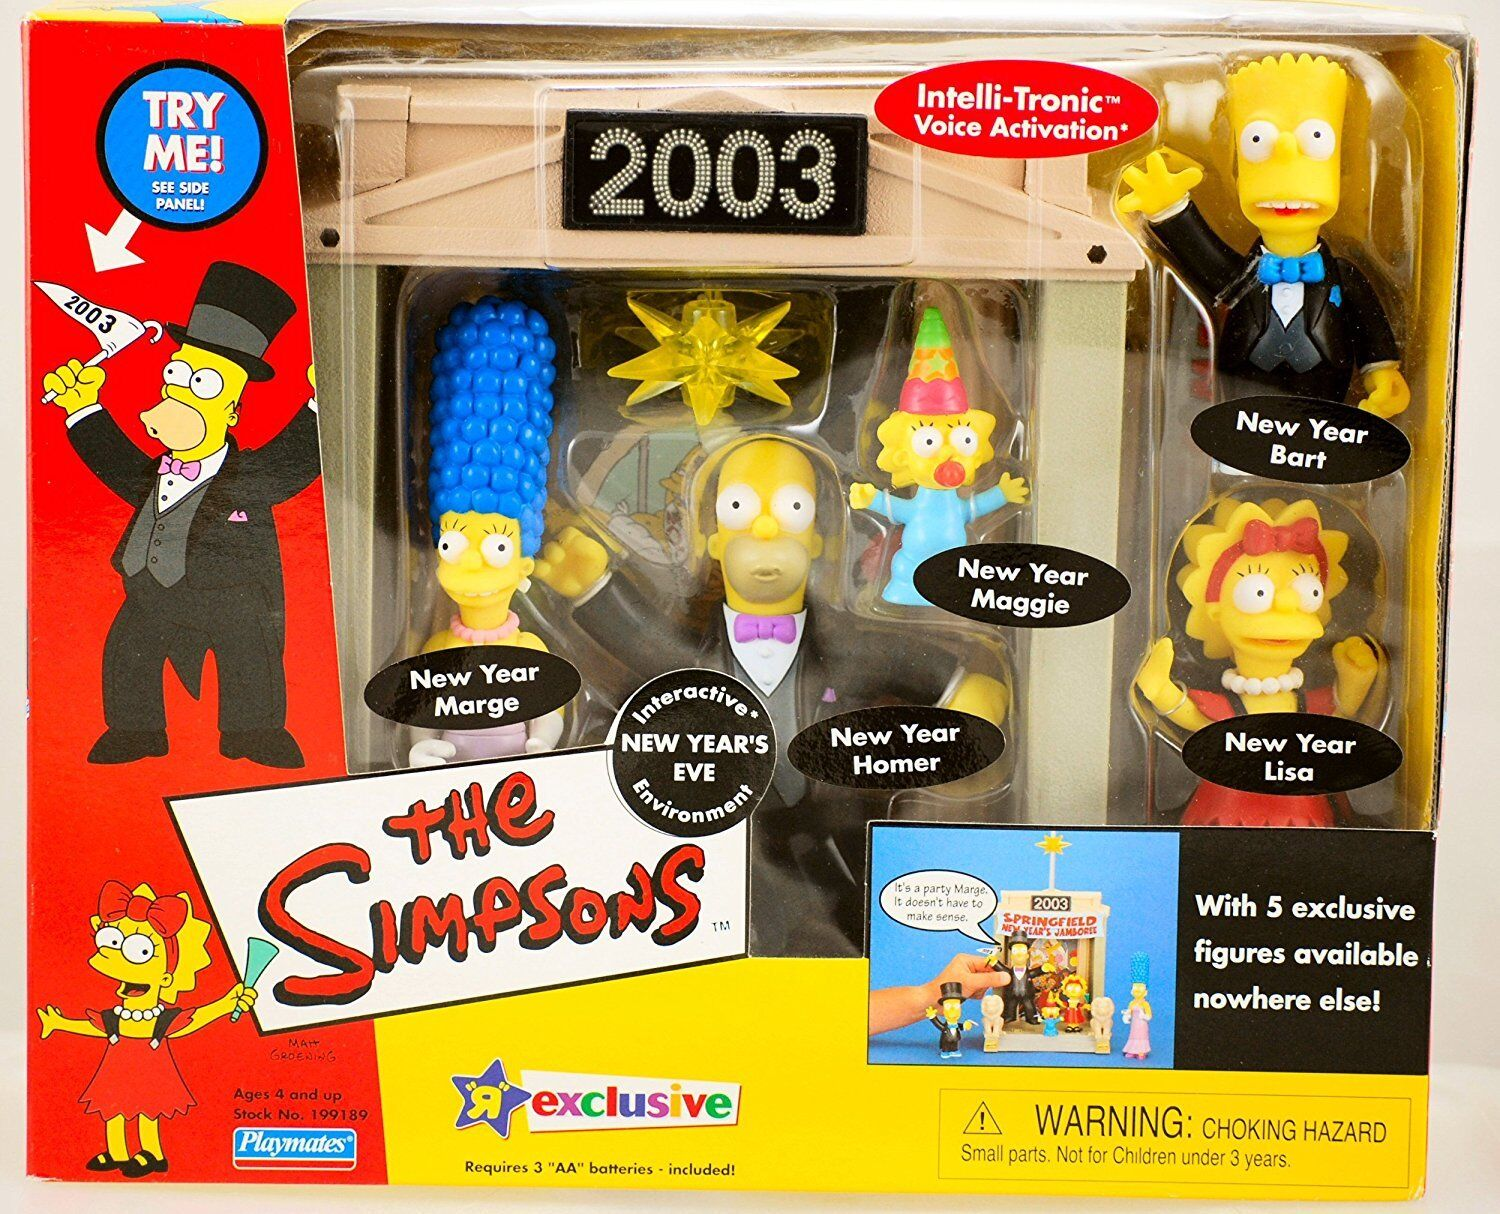 THE SIMPSON'S SIMPSON'S SIMPSON'S NEW YEARS EVE PLAYSET ENVIRONMENT - PLAYMATES 2003 fdb68a